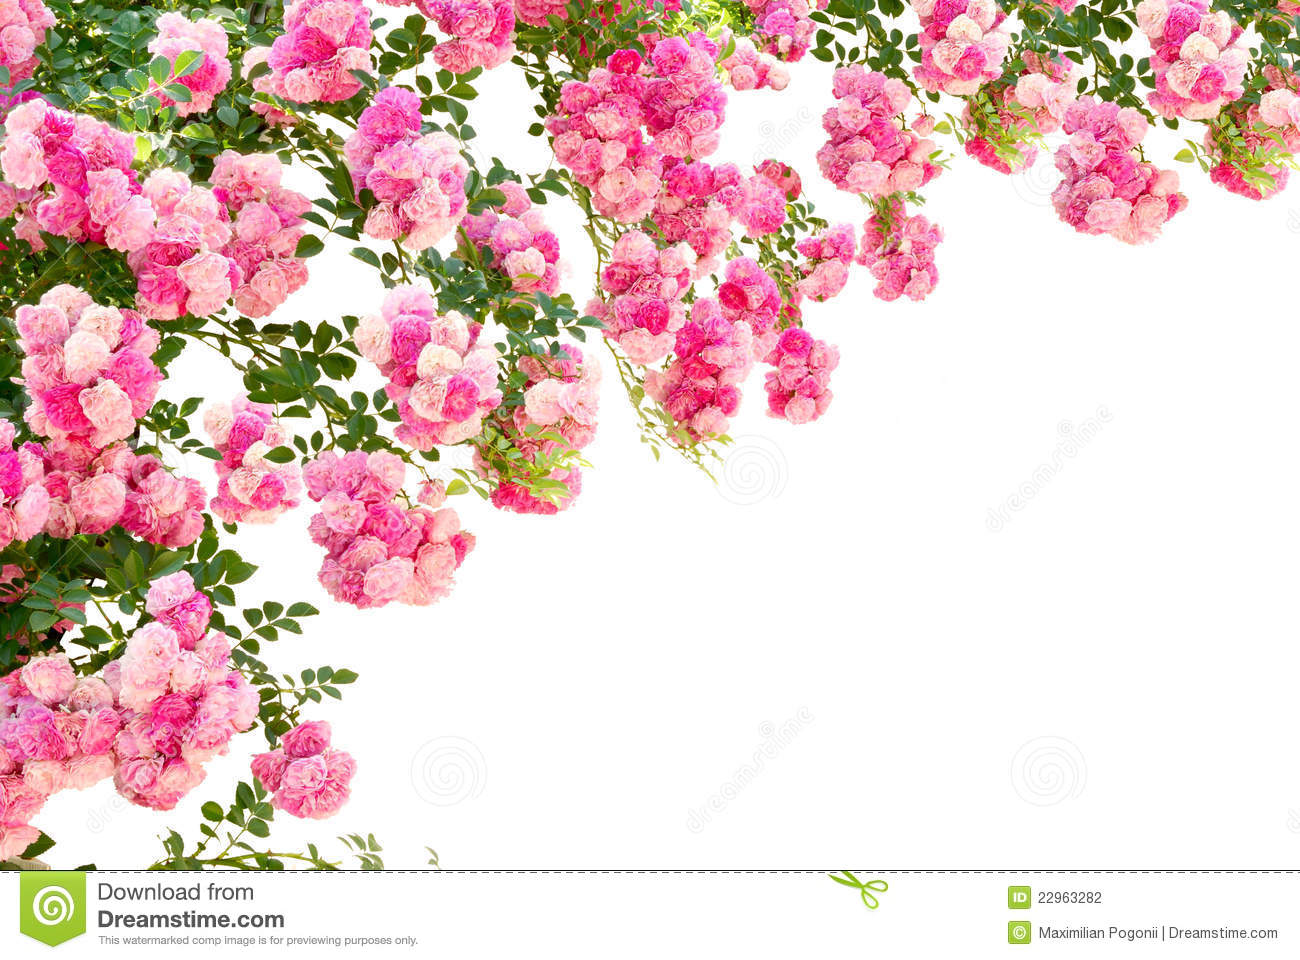 Rose flowers isolated on white background stock photography image 22963282